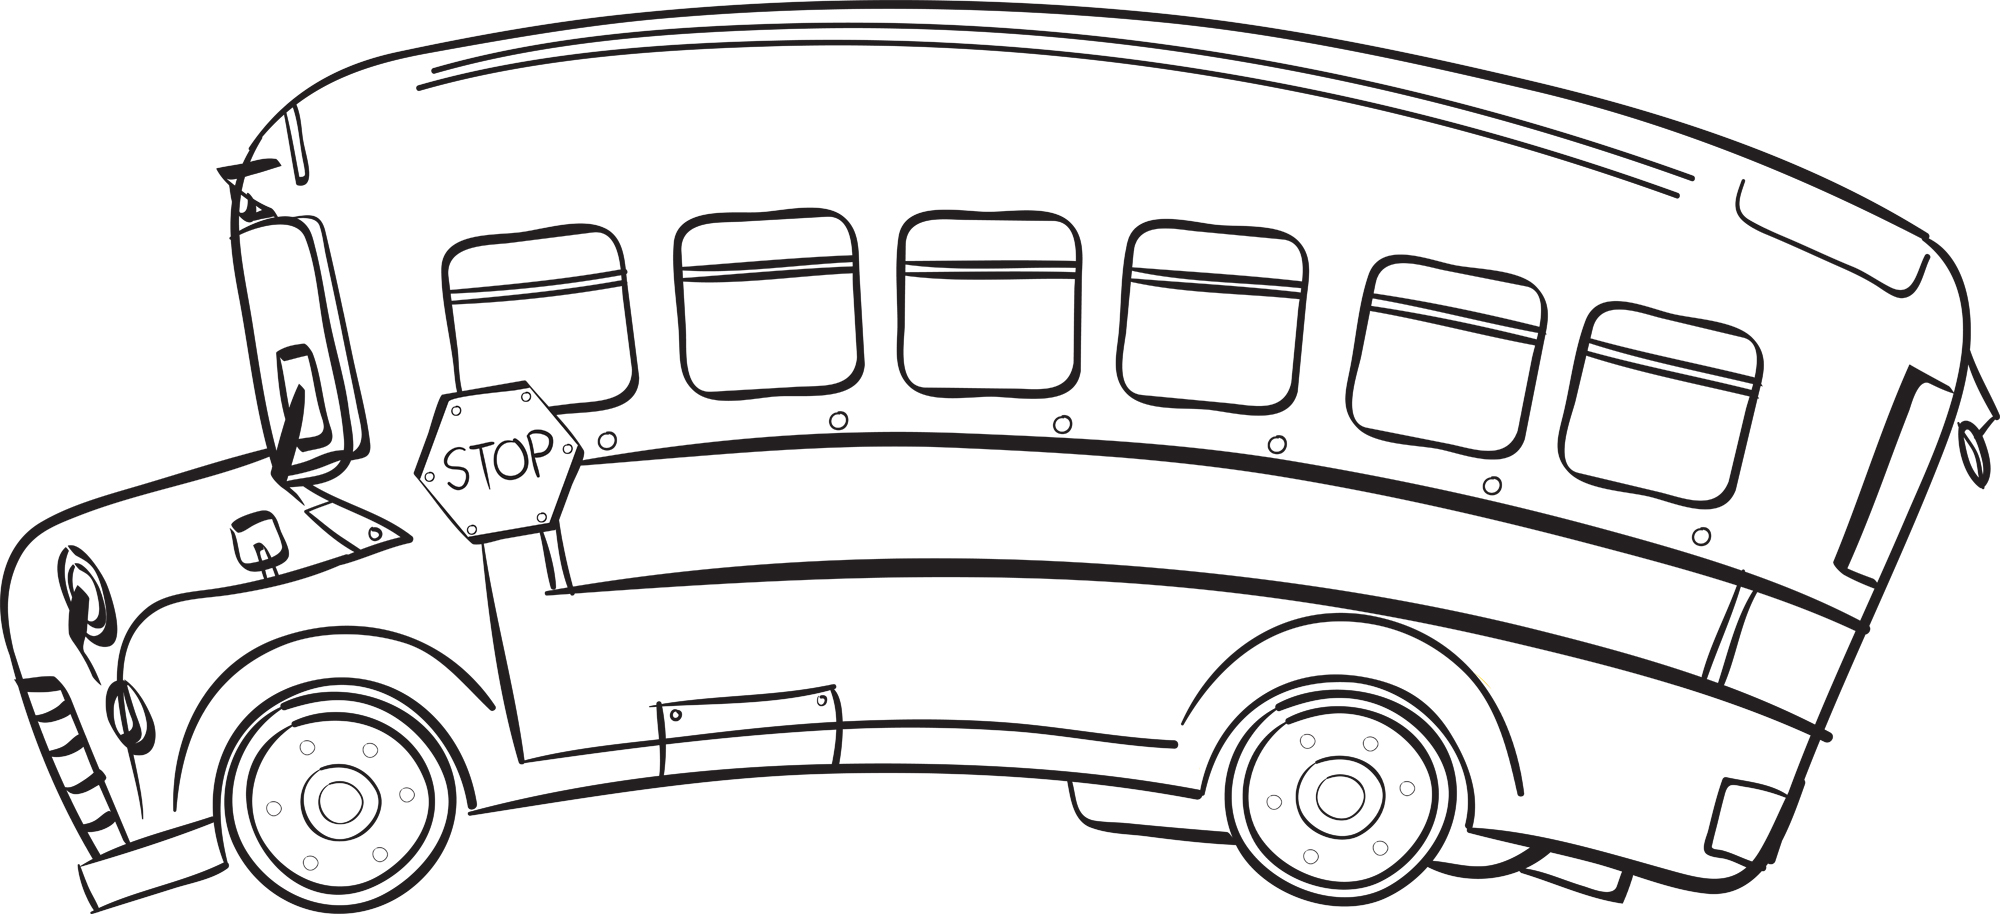 Cute school bus clip art free clipart images 3 wikiclipart 2.